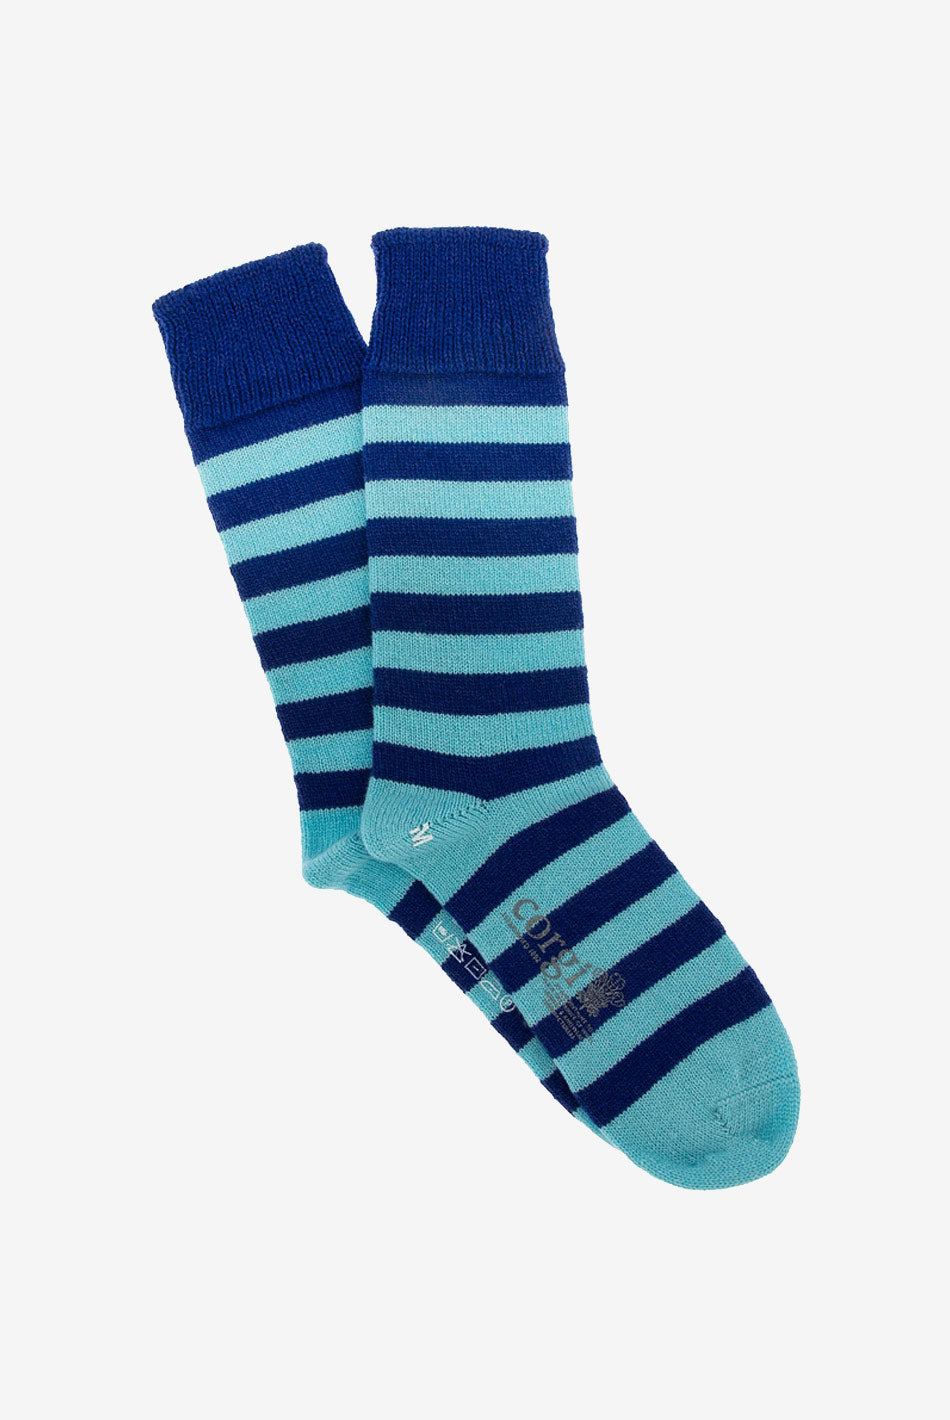 Thirteenth Doctor's Socks